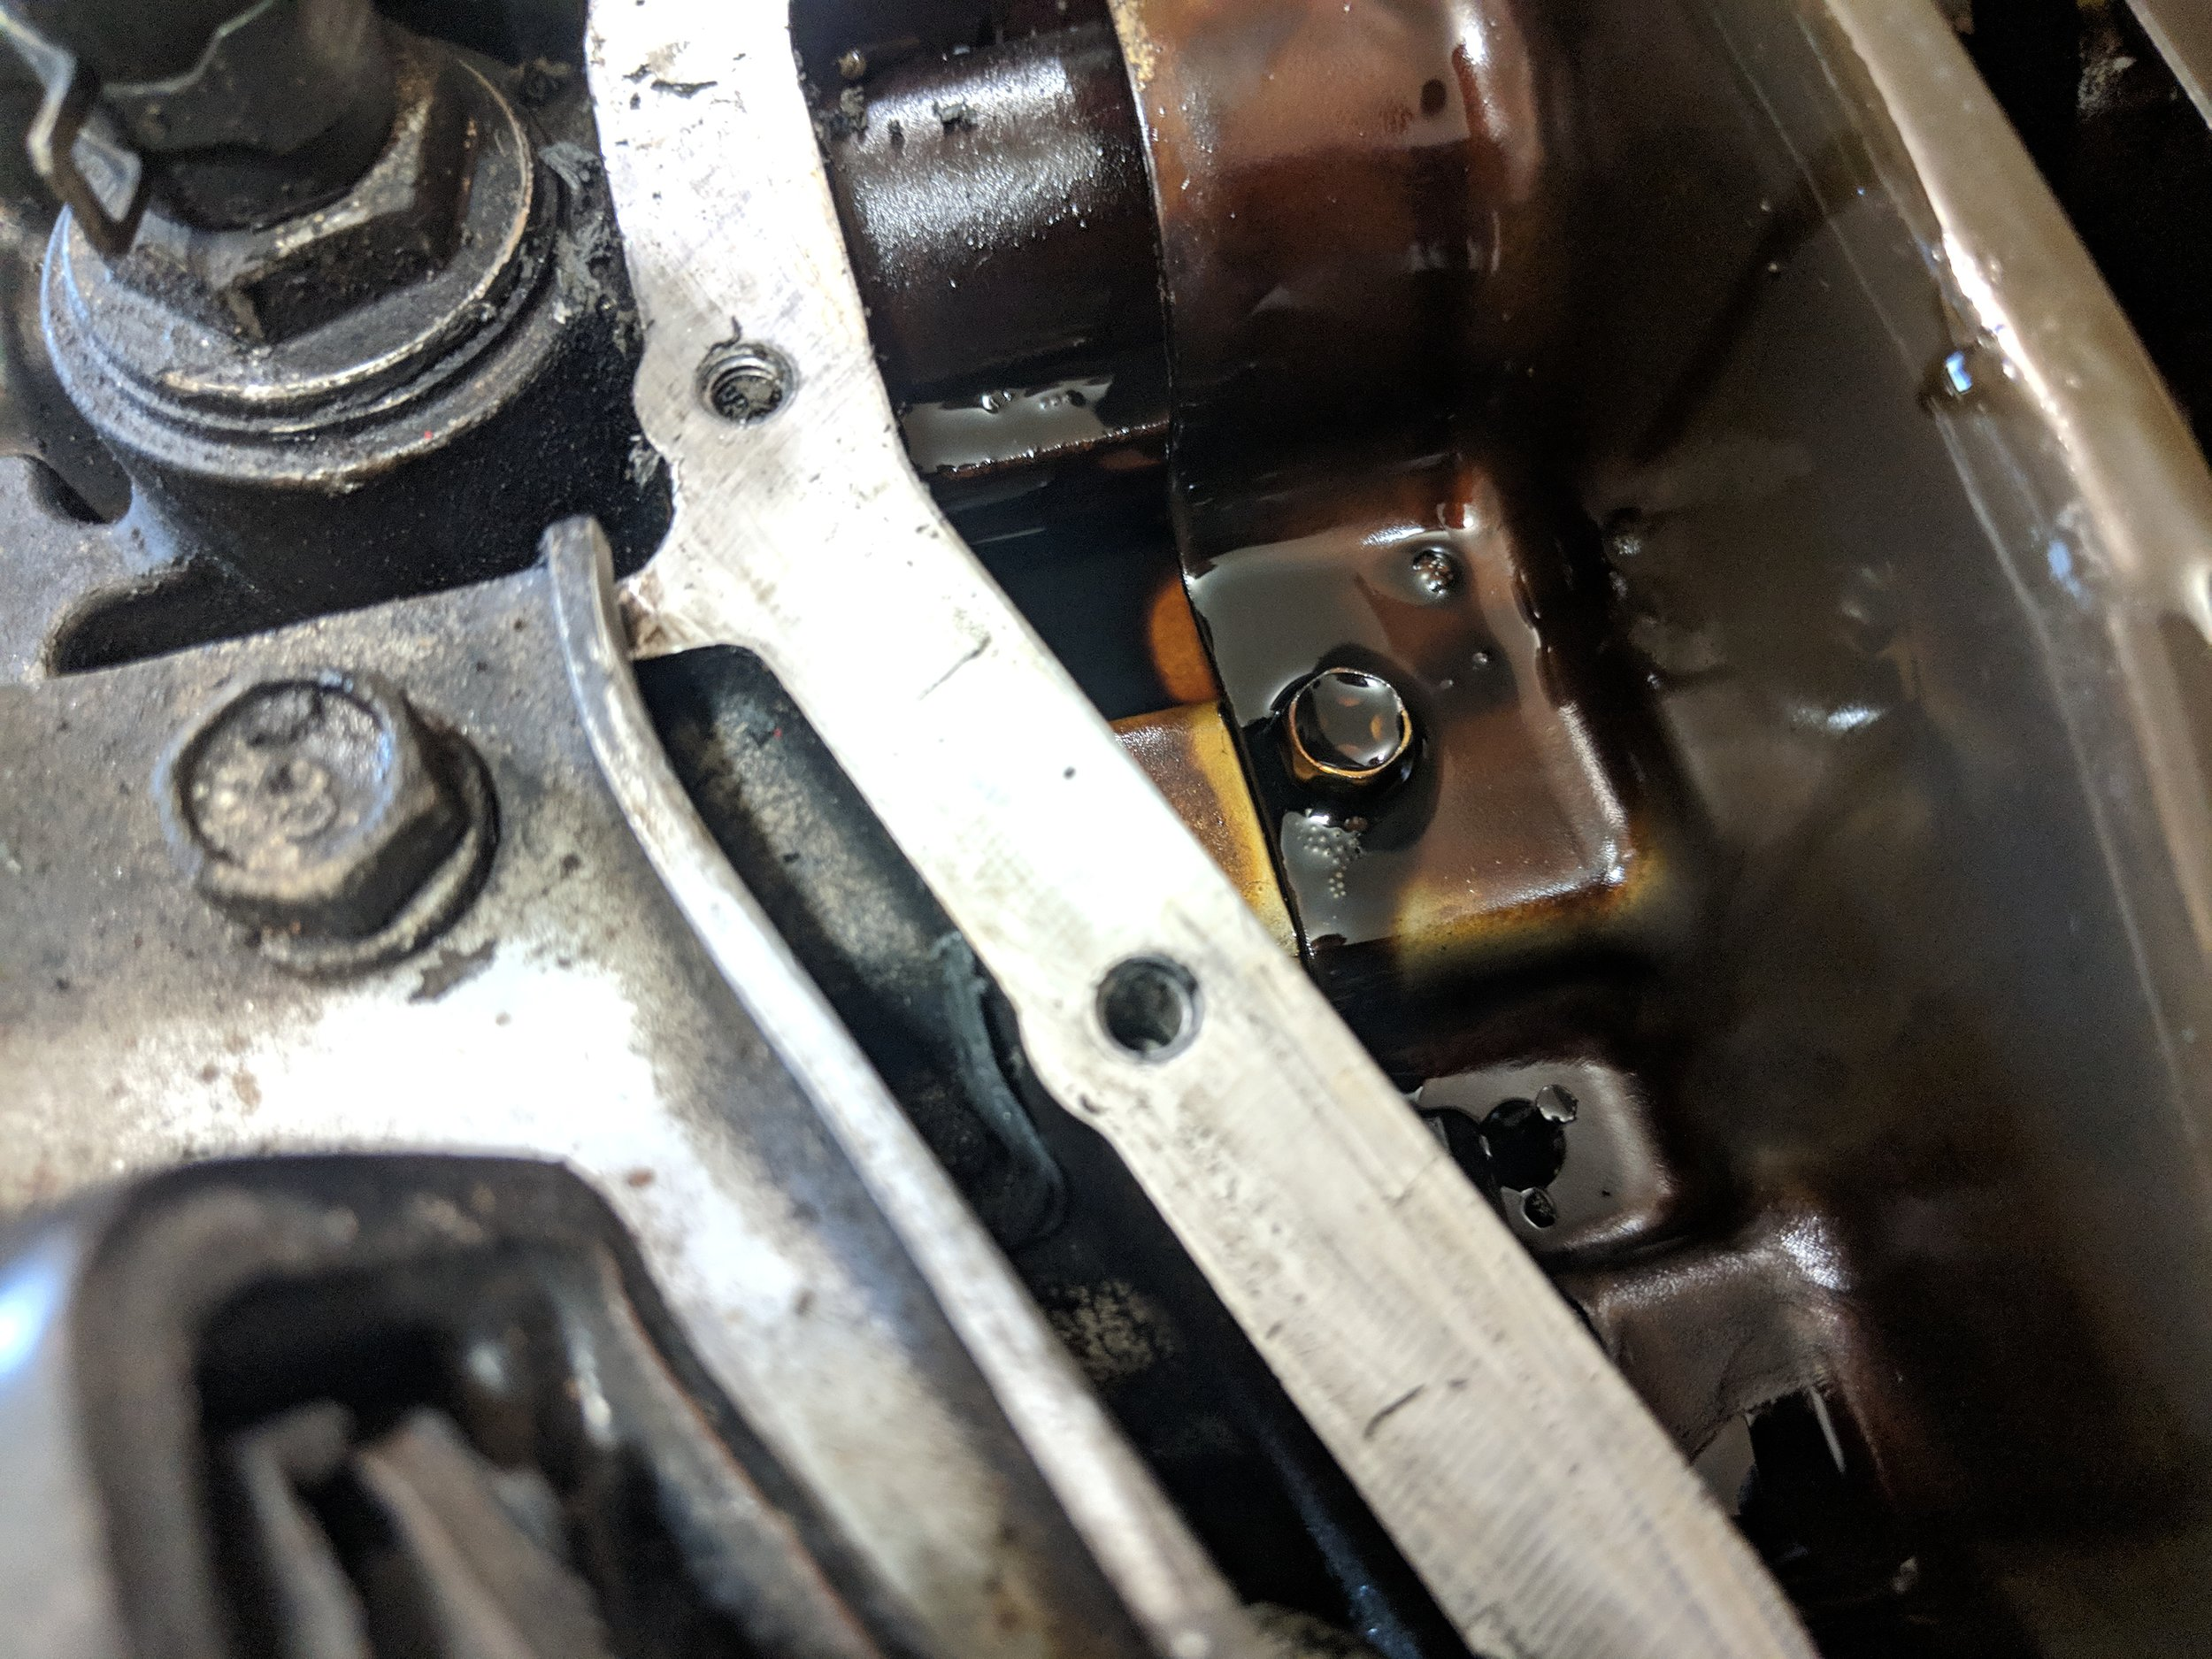 Cleaning off the gasket mating surface, while being careful to keep silicone out of the engine.